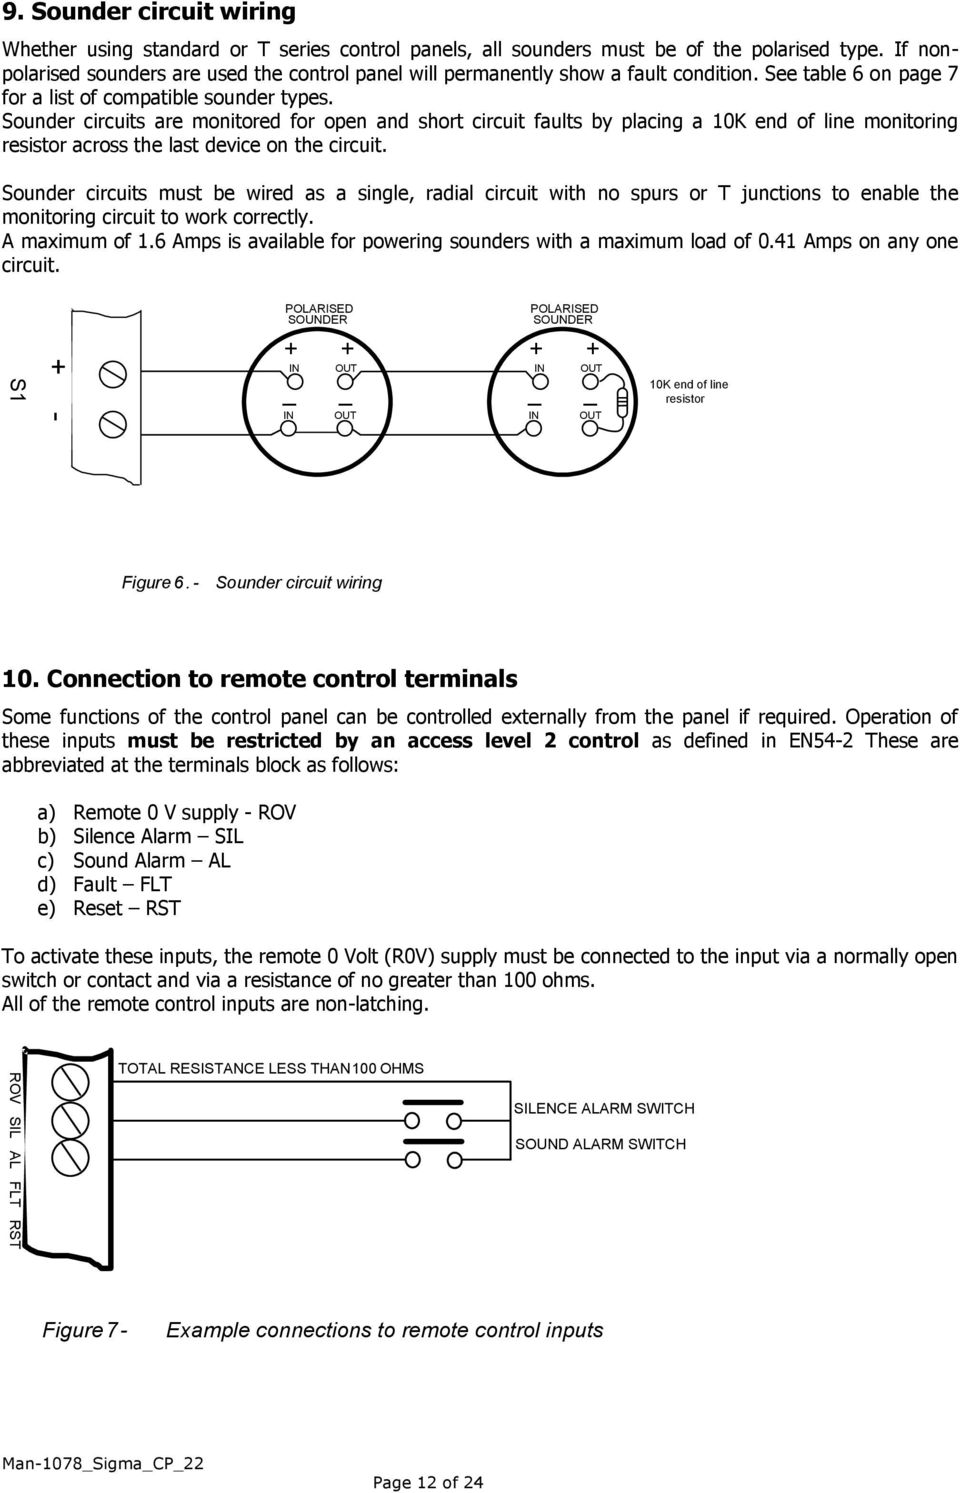 21 Power Supply Maintenance Pdf Circuit Wiring Definition Sounder Circuits Are Monitored For Open And Short Faults By Placing A 10k End Of